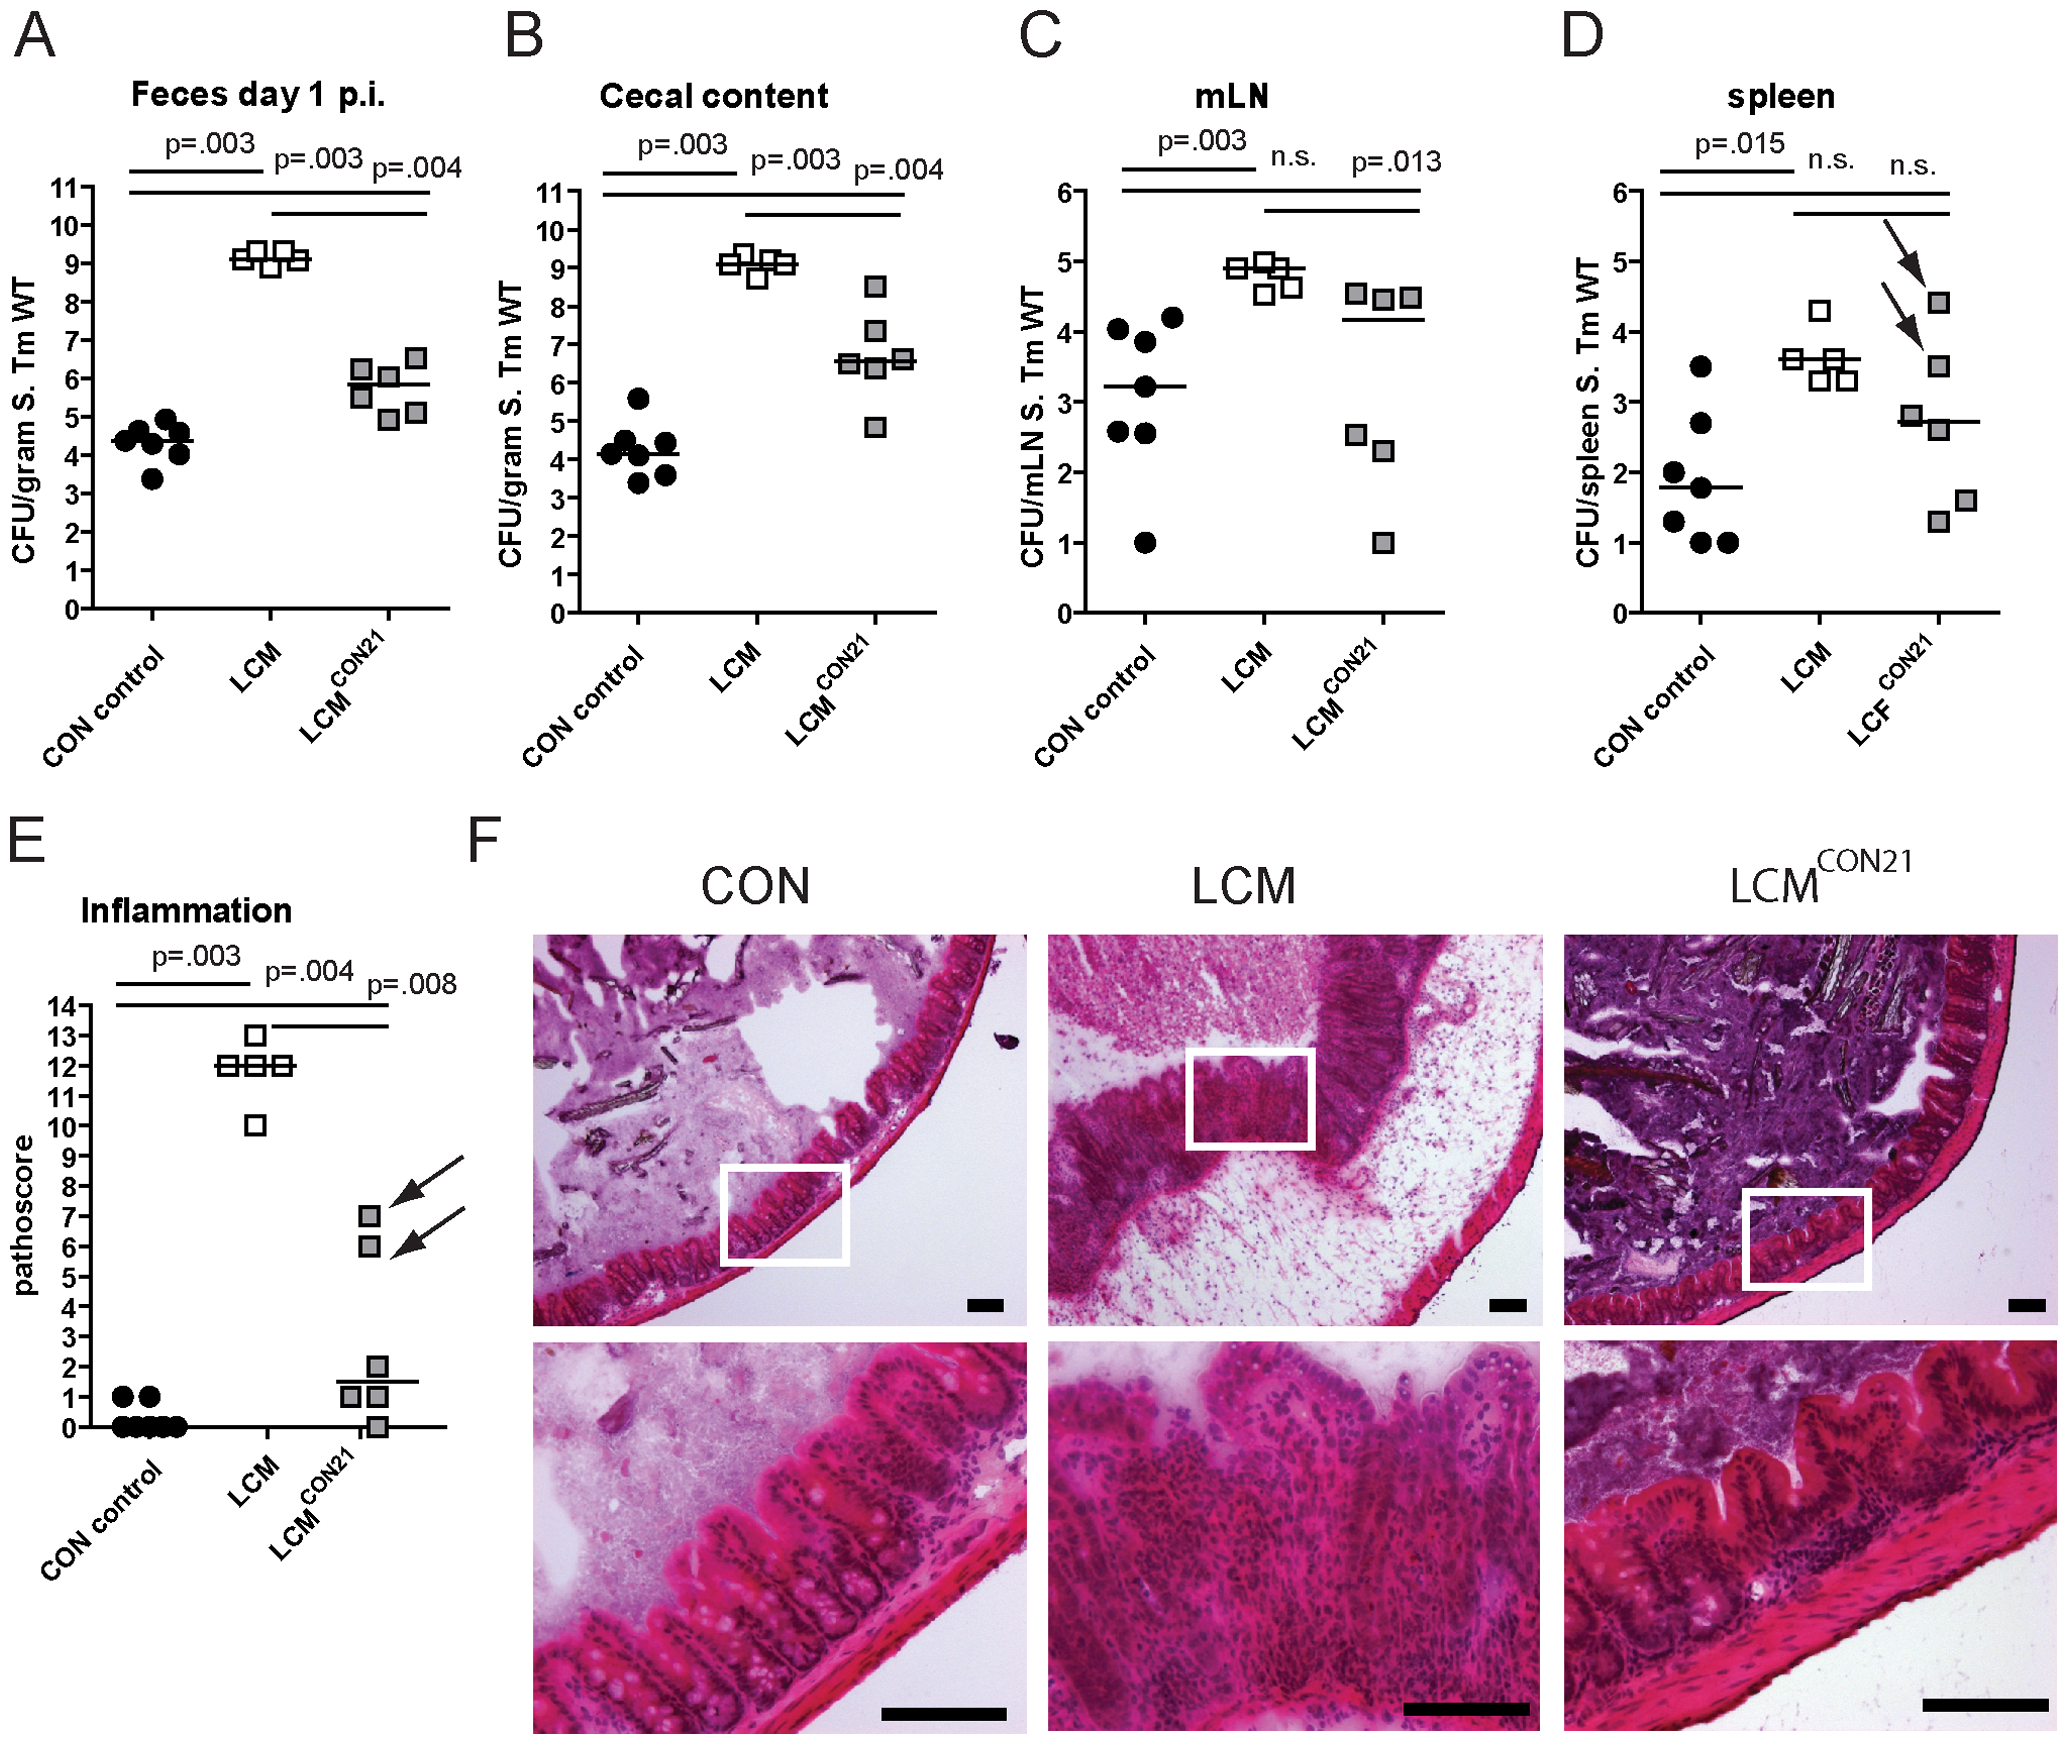 LCM gain CR by re-association with normal CON microbiota.